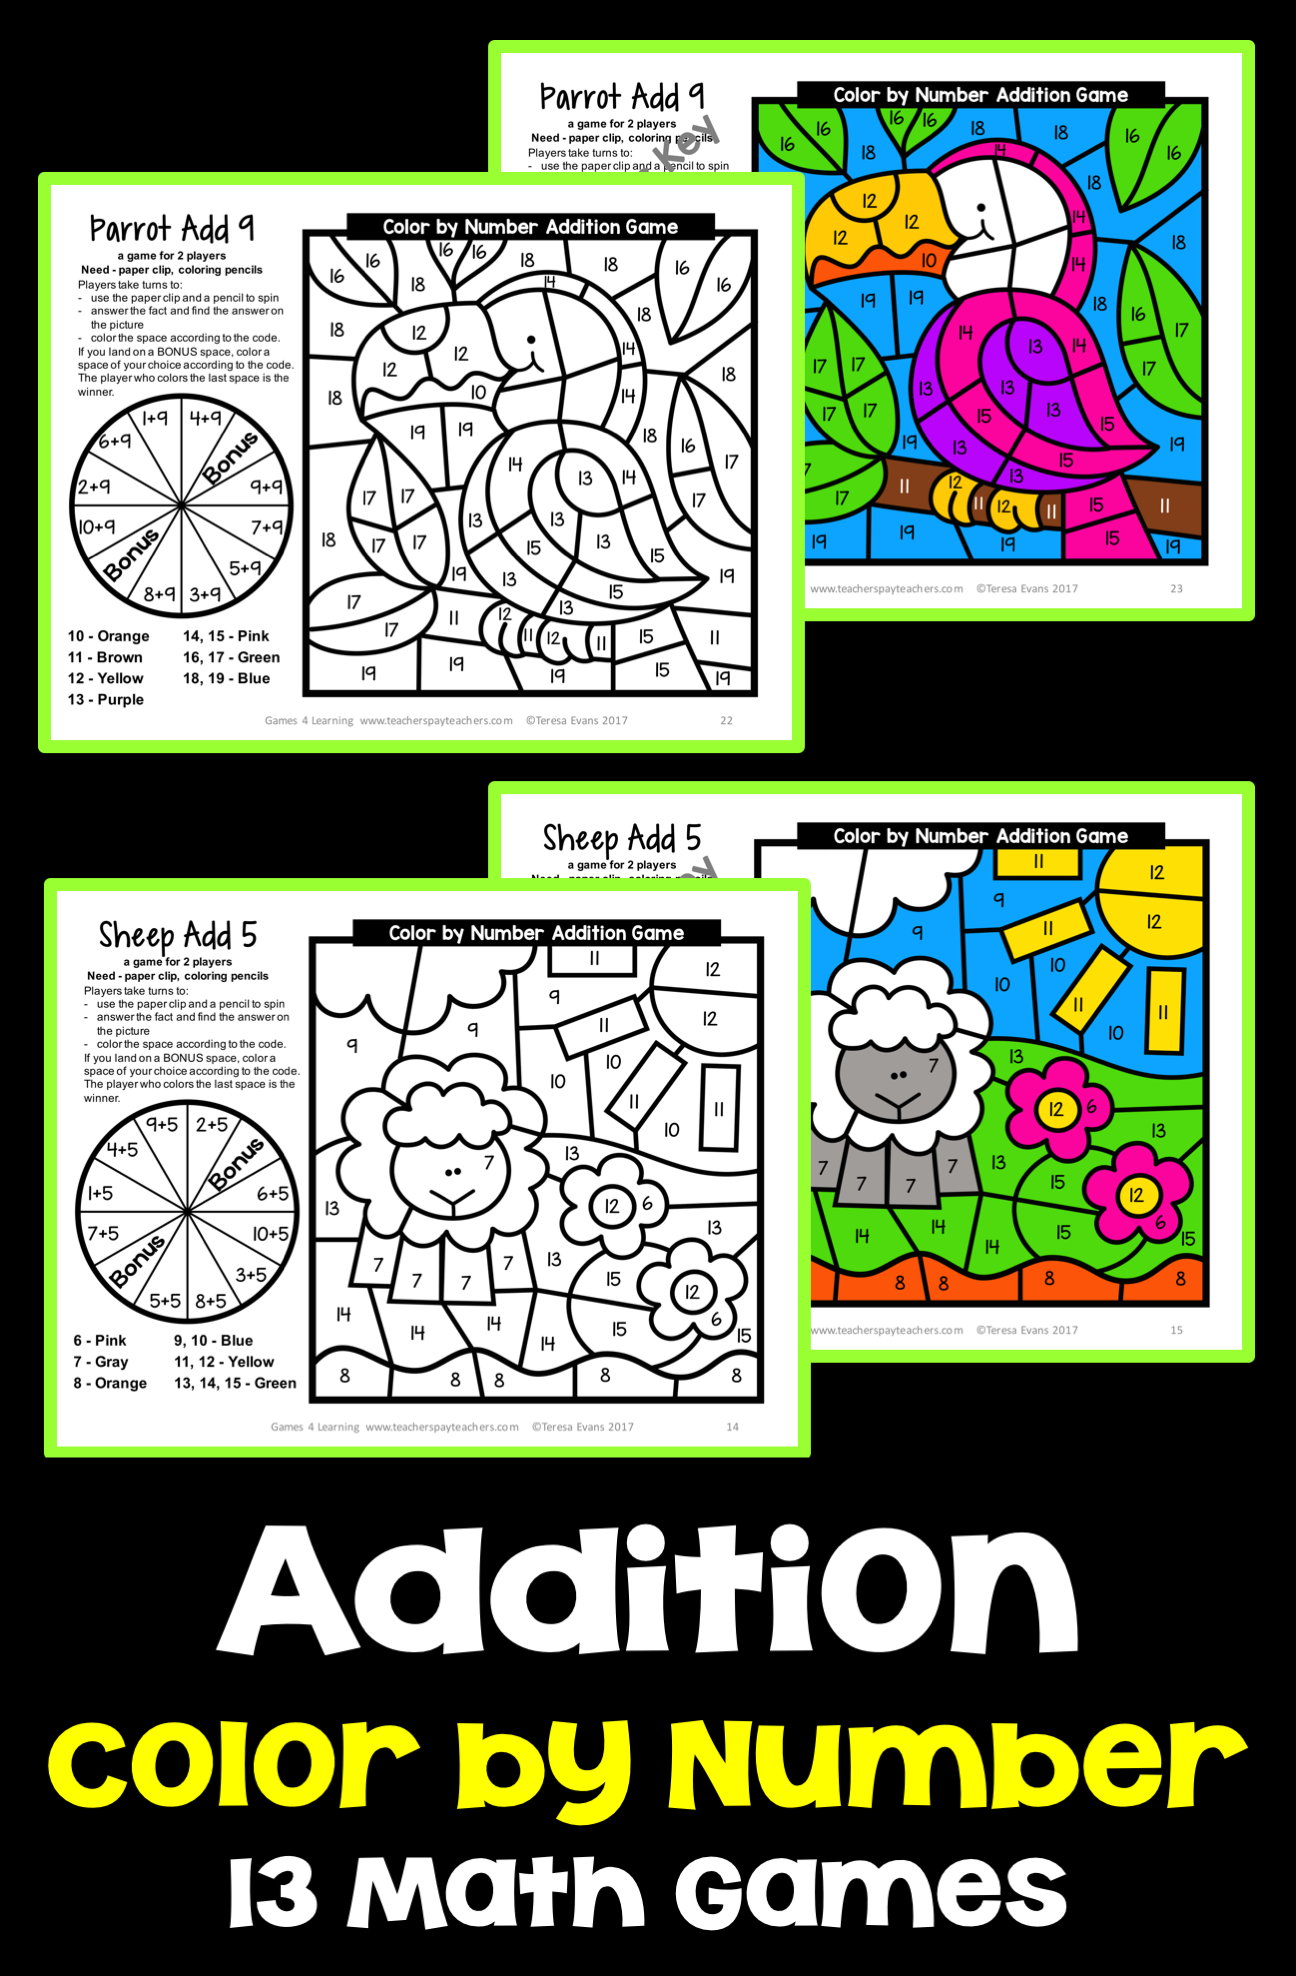 A fun twist on Color by number - Addition Math games for 2 players ...